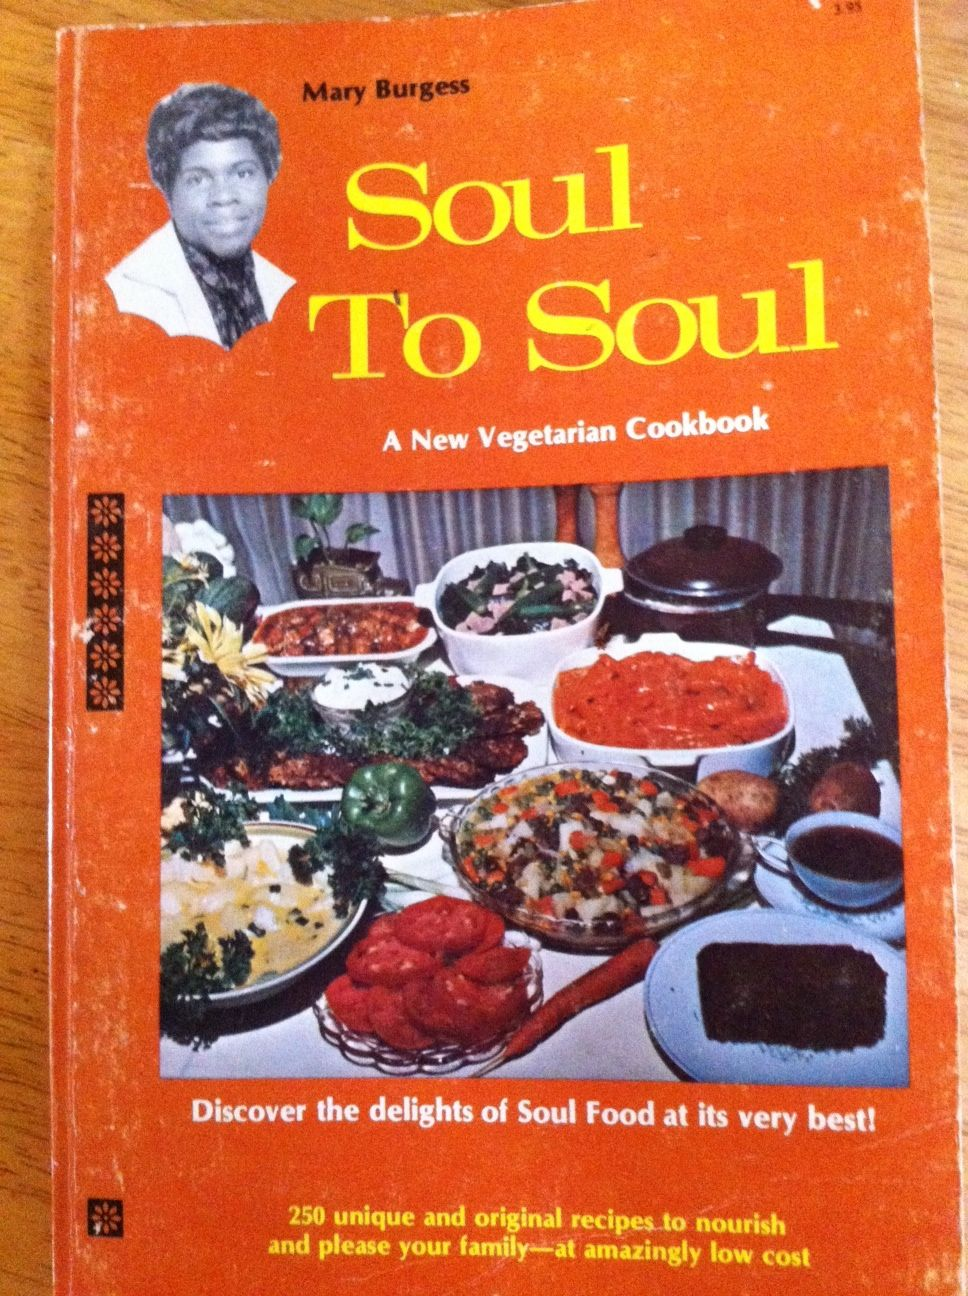 Love it when i find old cookbooks at garage sales this one is a mary burgess soul to soul vegetarian soul food cookbook challenges traditional cuisine definitions our copr was discarded from a public library in forumfinder Choice Image